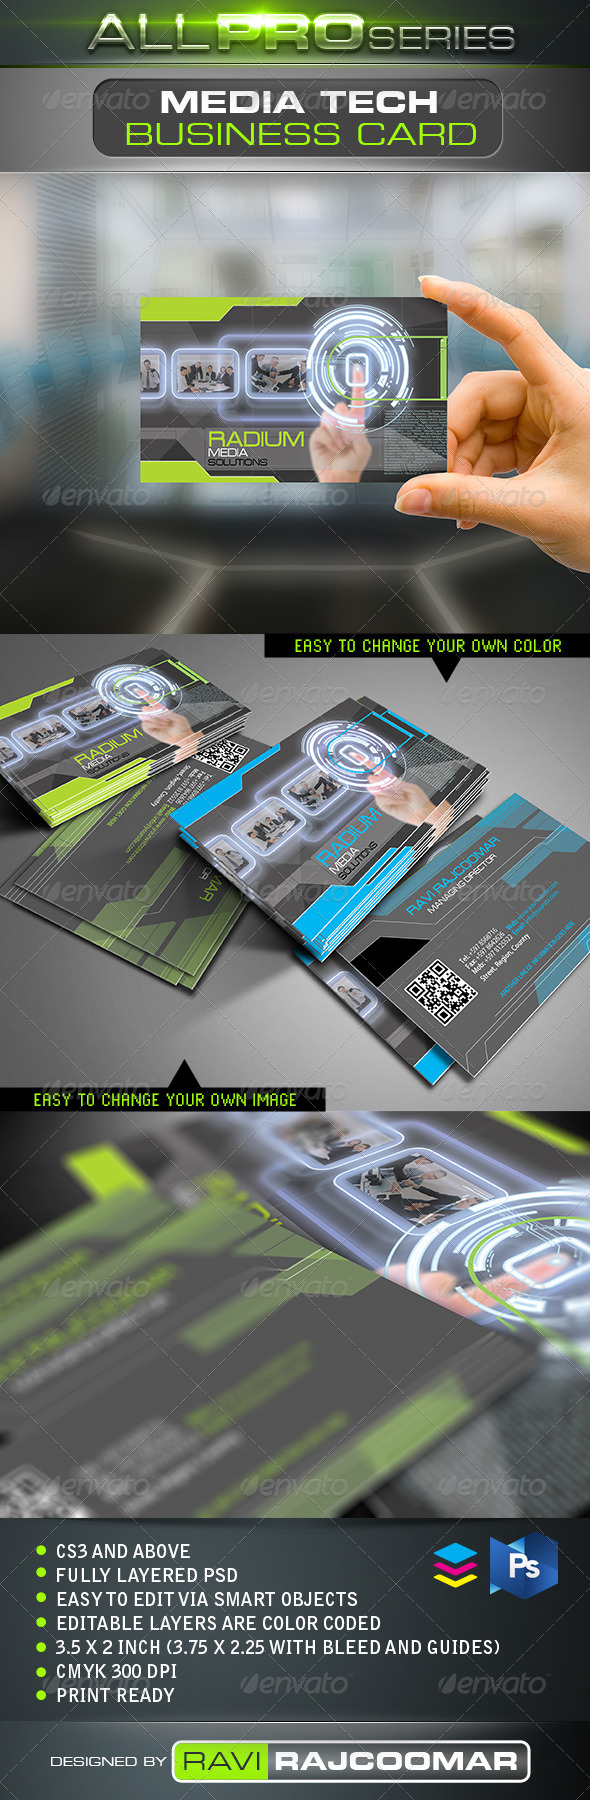 Media Tech Business Card - Business Cards Print Templates